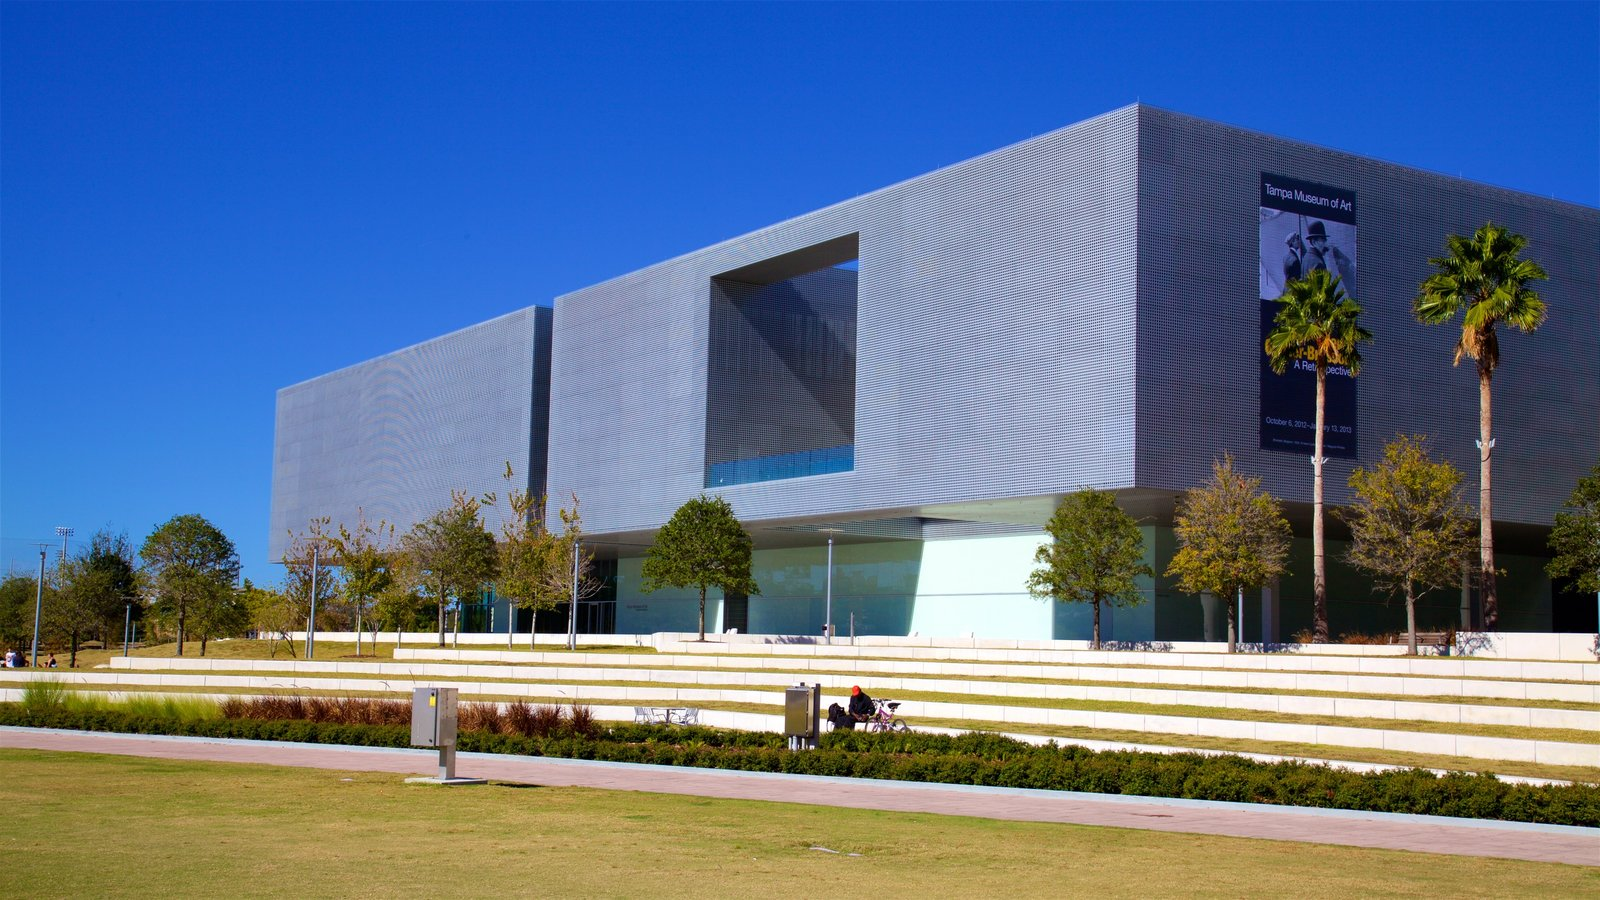 Tampa Museum of Art showing modern architecture